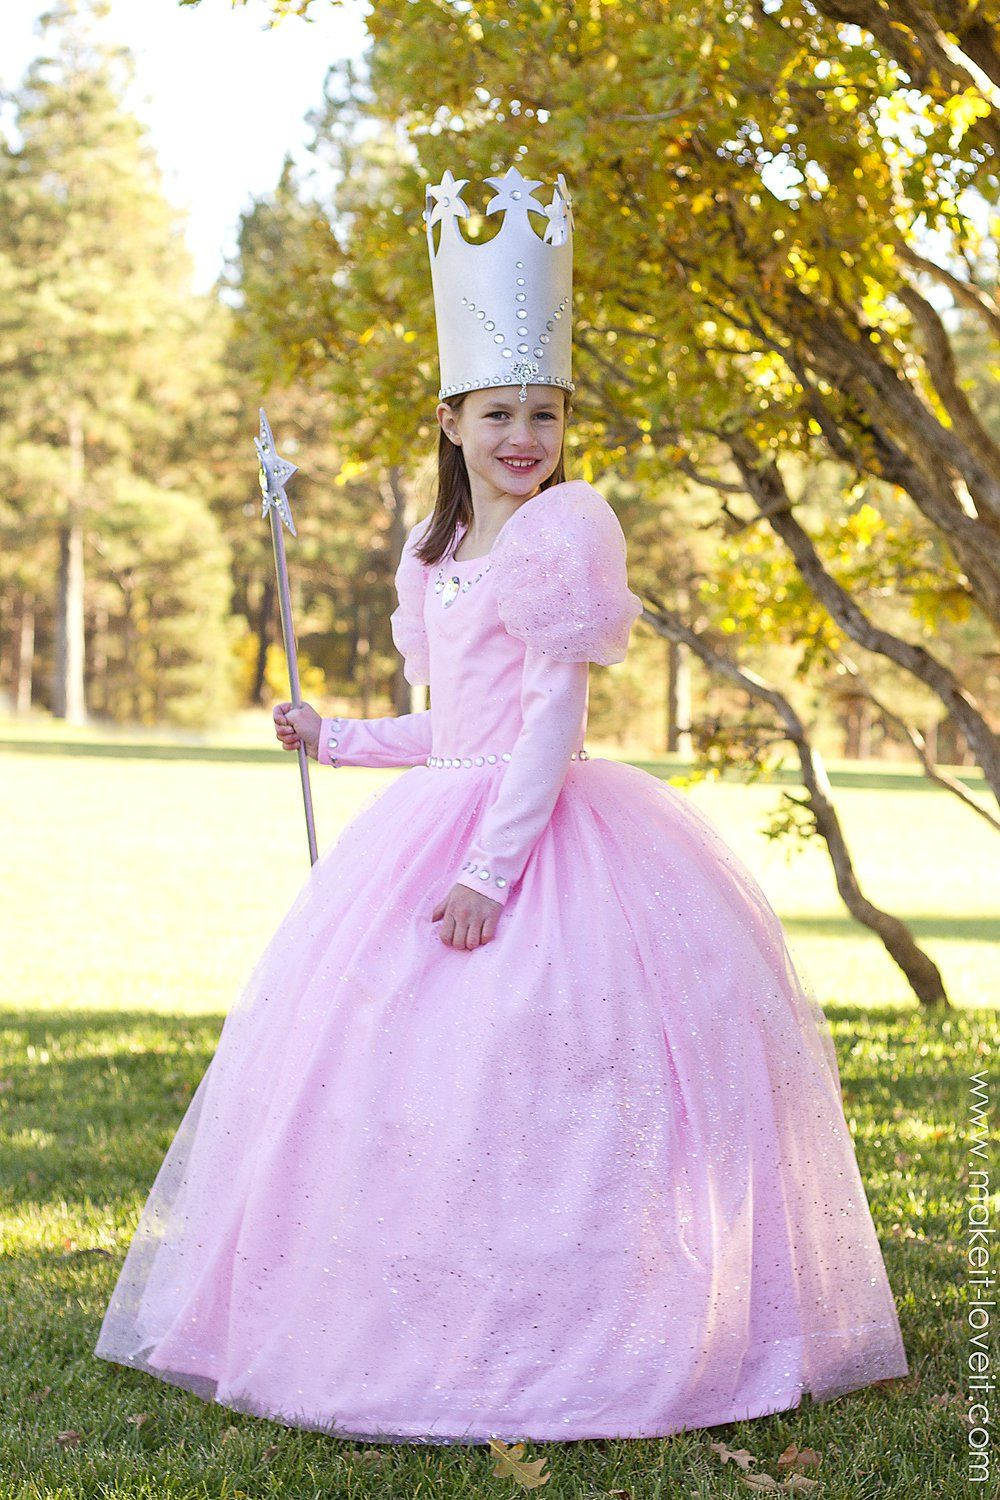 DIY  Glinda the Good Witch  Costume (from Wizard of Oz) | via Make It and Love It  sc 1 st  Pinterest & Glinda the Good Witch (from